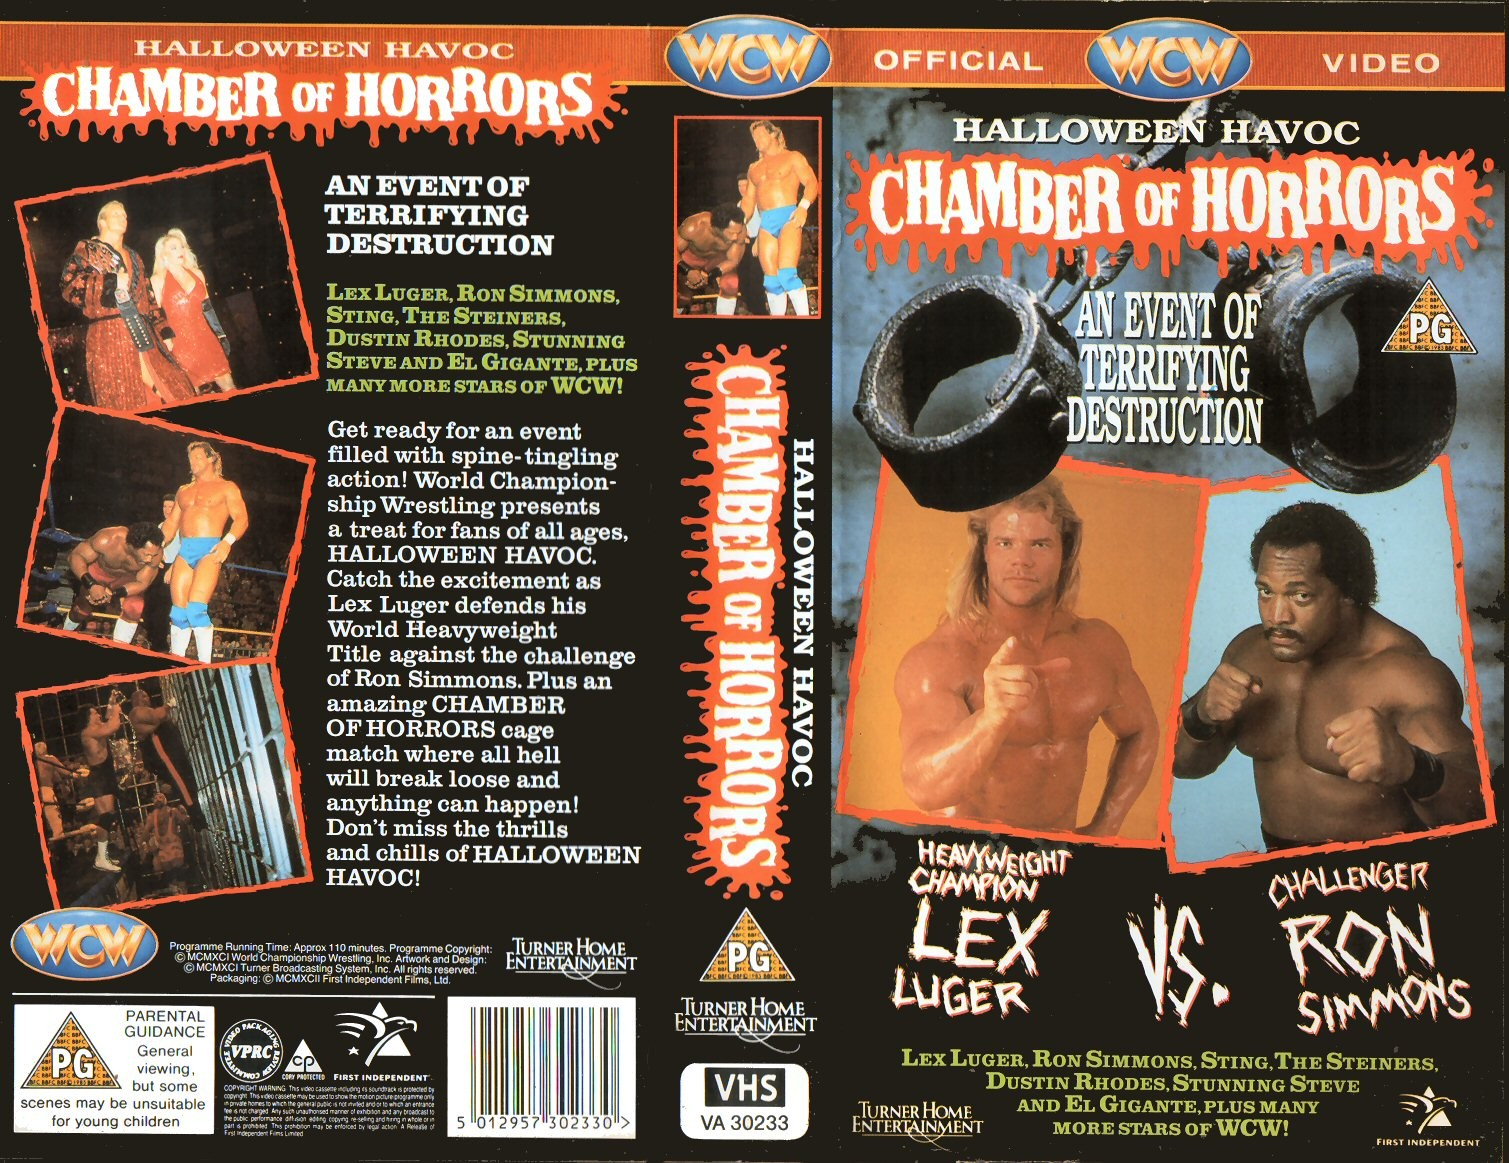 Wcw_Halloween_Havoc_Chamber_Of_Horrors-[cdcovers_cc]-front